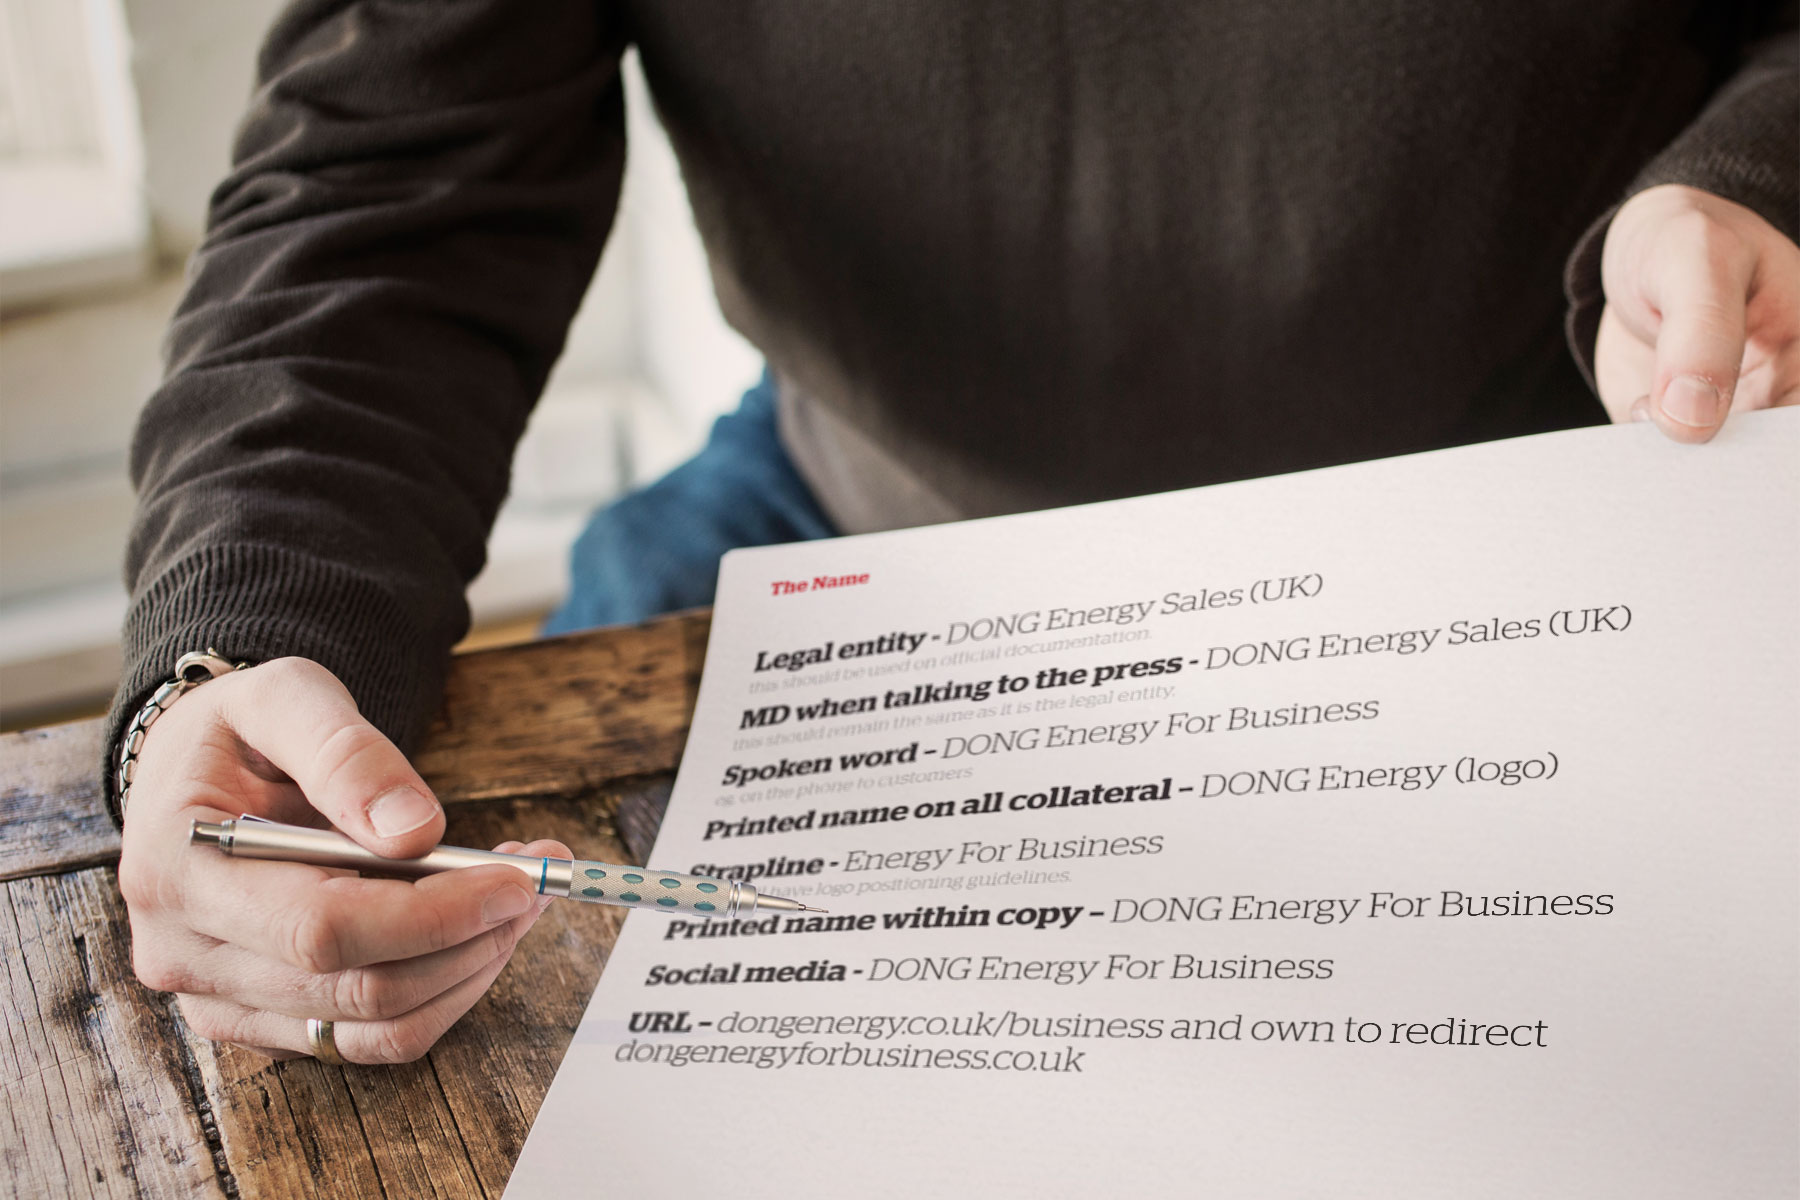 Re-positioning the brand as 'DONG Energy for Business' adds gravitas to the company. Previously known as DONG Energy Sales, an incredibly competitive marketplace called for a more SEO-friendly name.